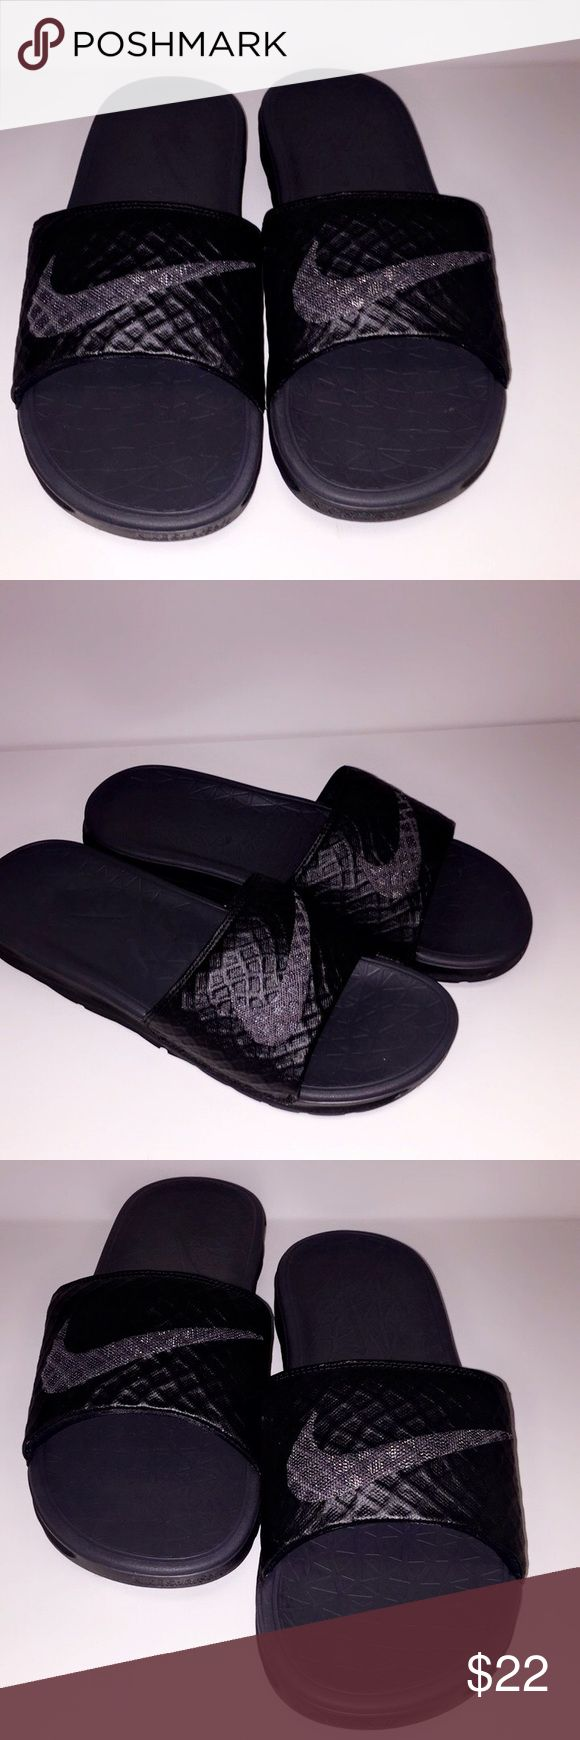 Men's Nike Benassi Solarsoft Slides Featuring a padded lining and grooved footbed for ventilation, these men's Nike sandals are perfect for post-game wear or relaxing on weekends. Nike Shoes Sandals & Flip-Flops